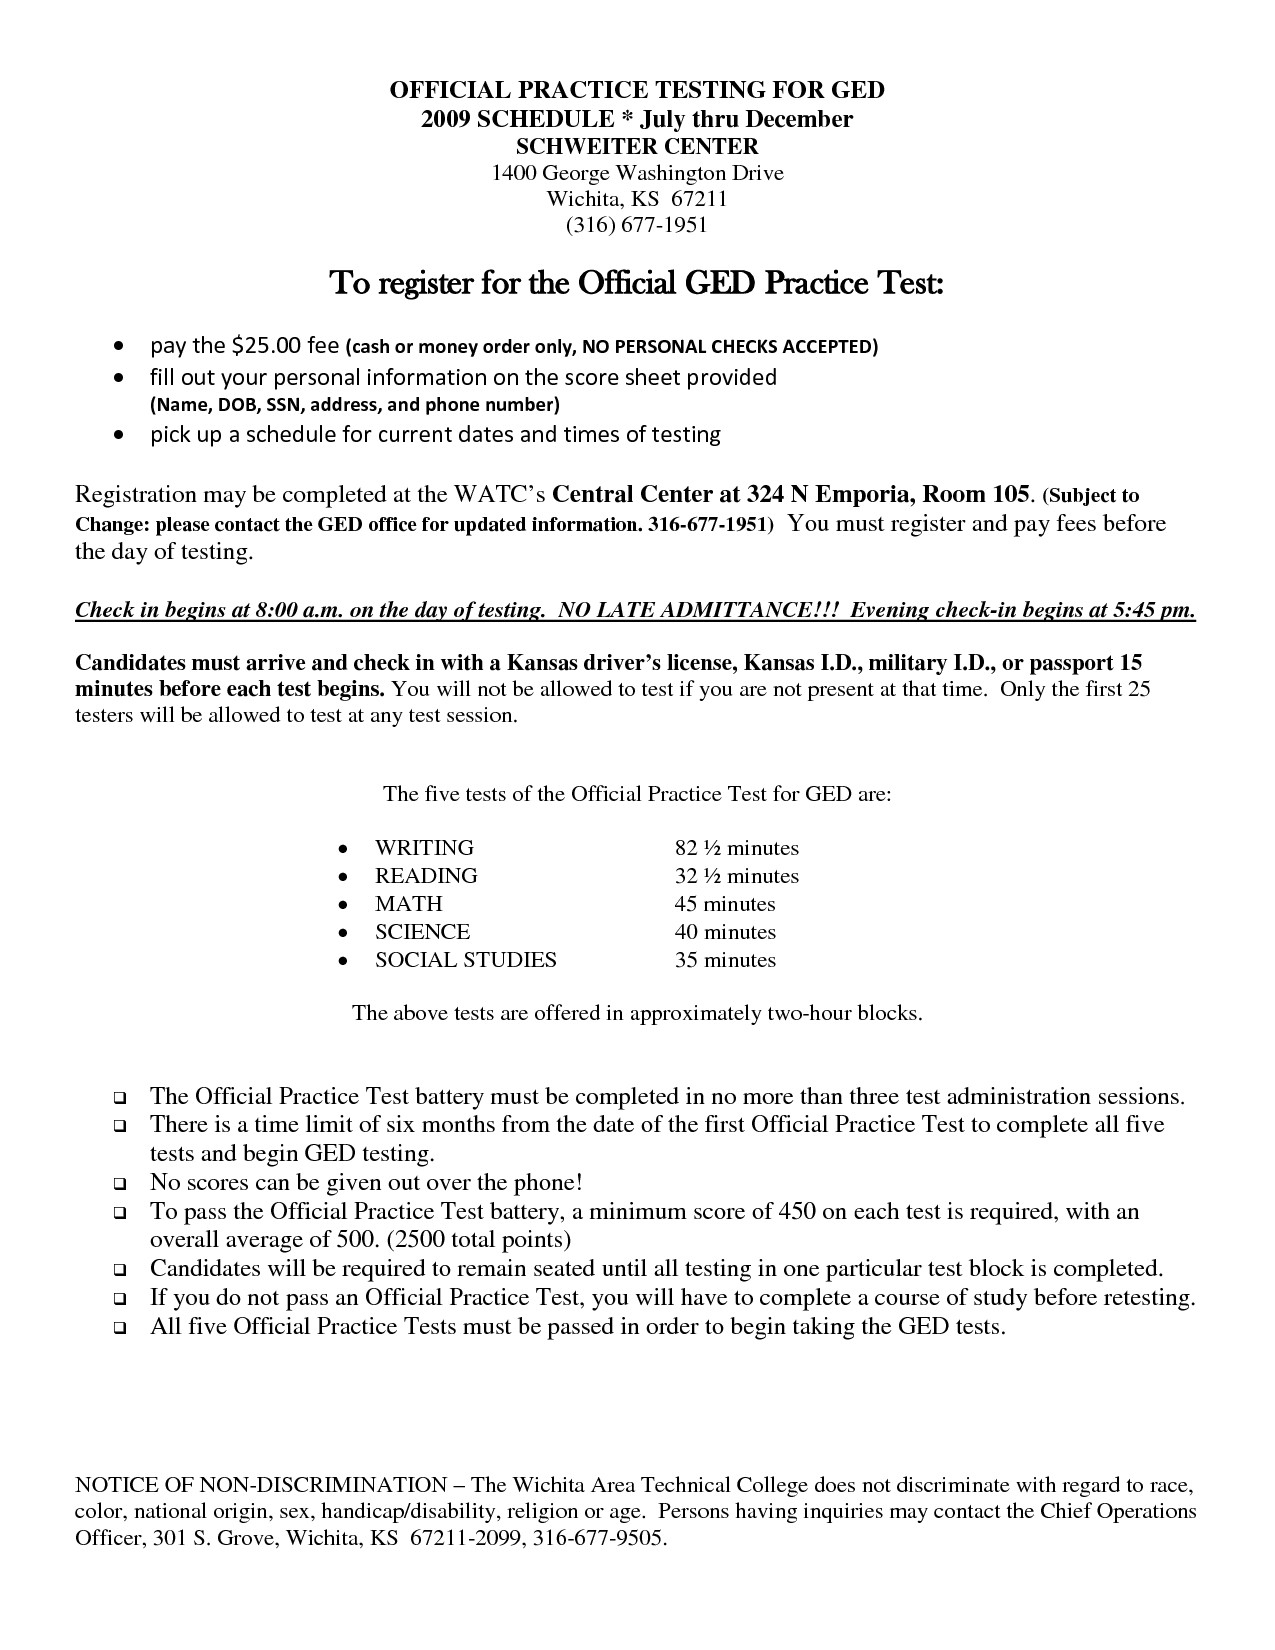 Free Printable Ged Math Practice Test - Printable And Coloring Page 2018 - Free Printable Ged Practice Test With Answer Key 2017